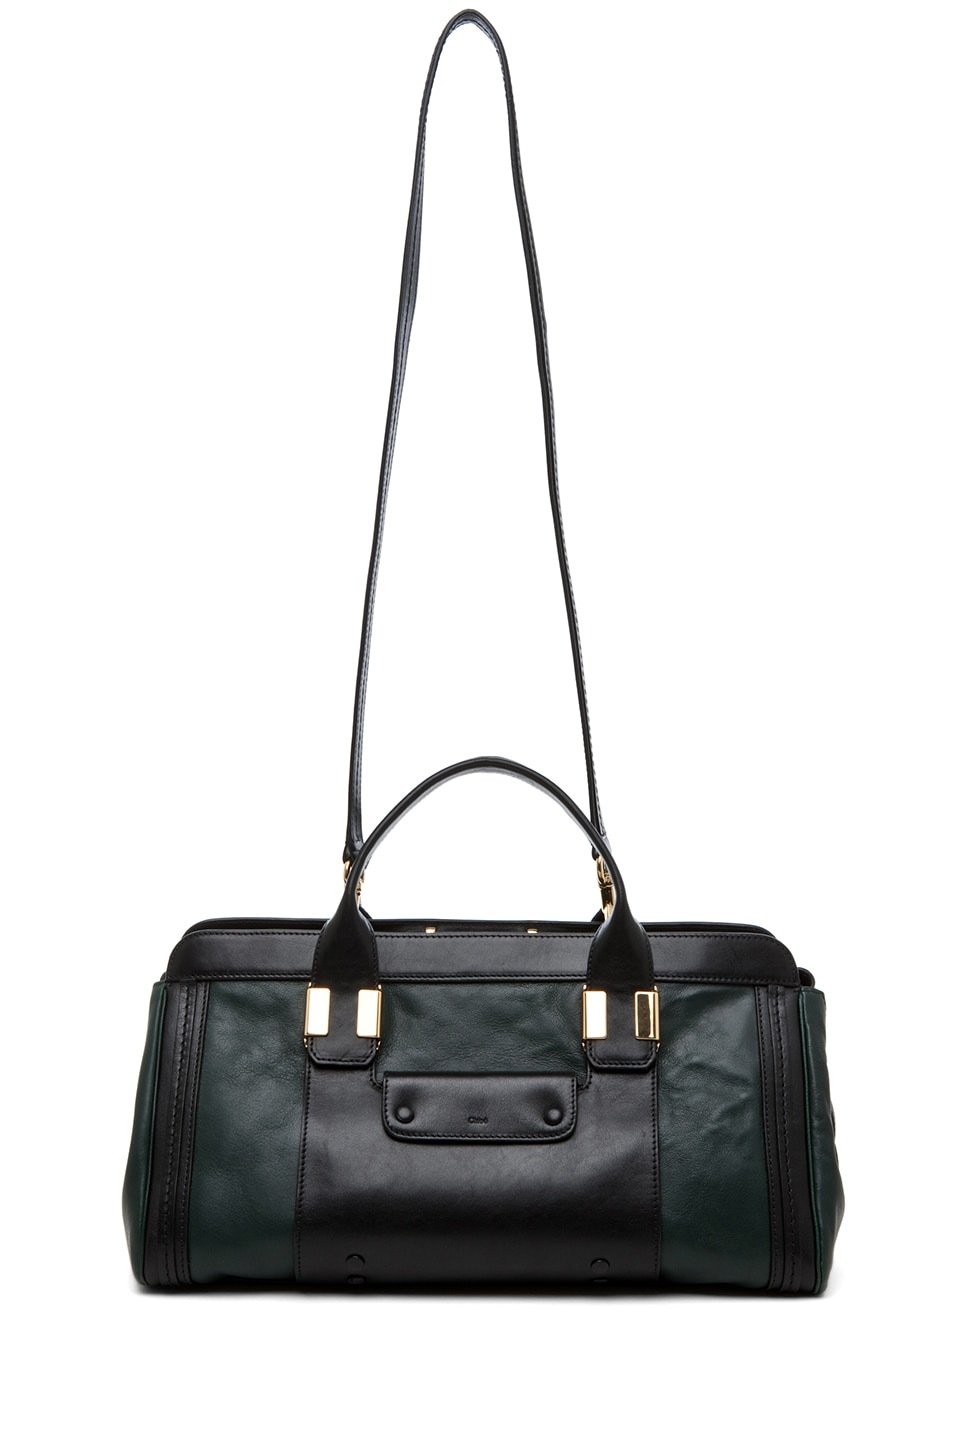 Image 5 of Chloe Alice Springs Medium Handbag in Fir Green